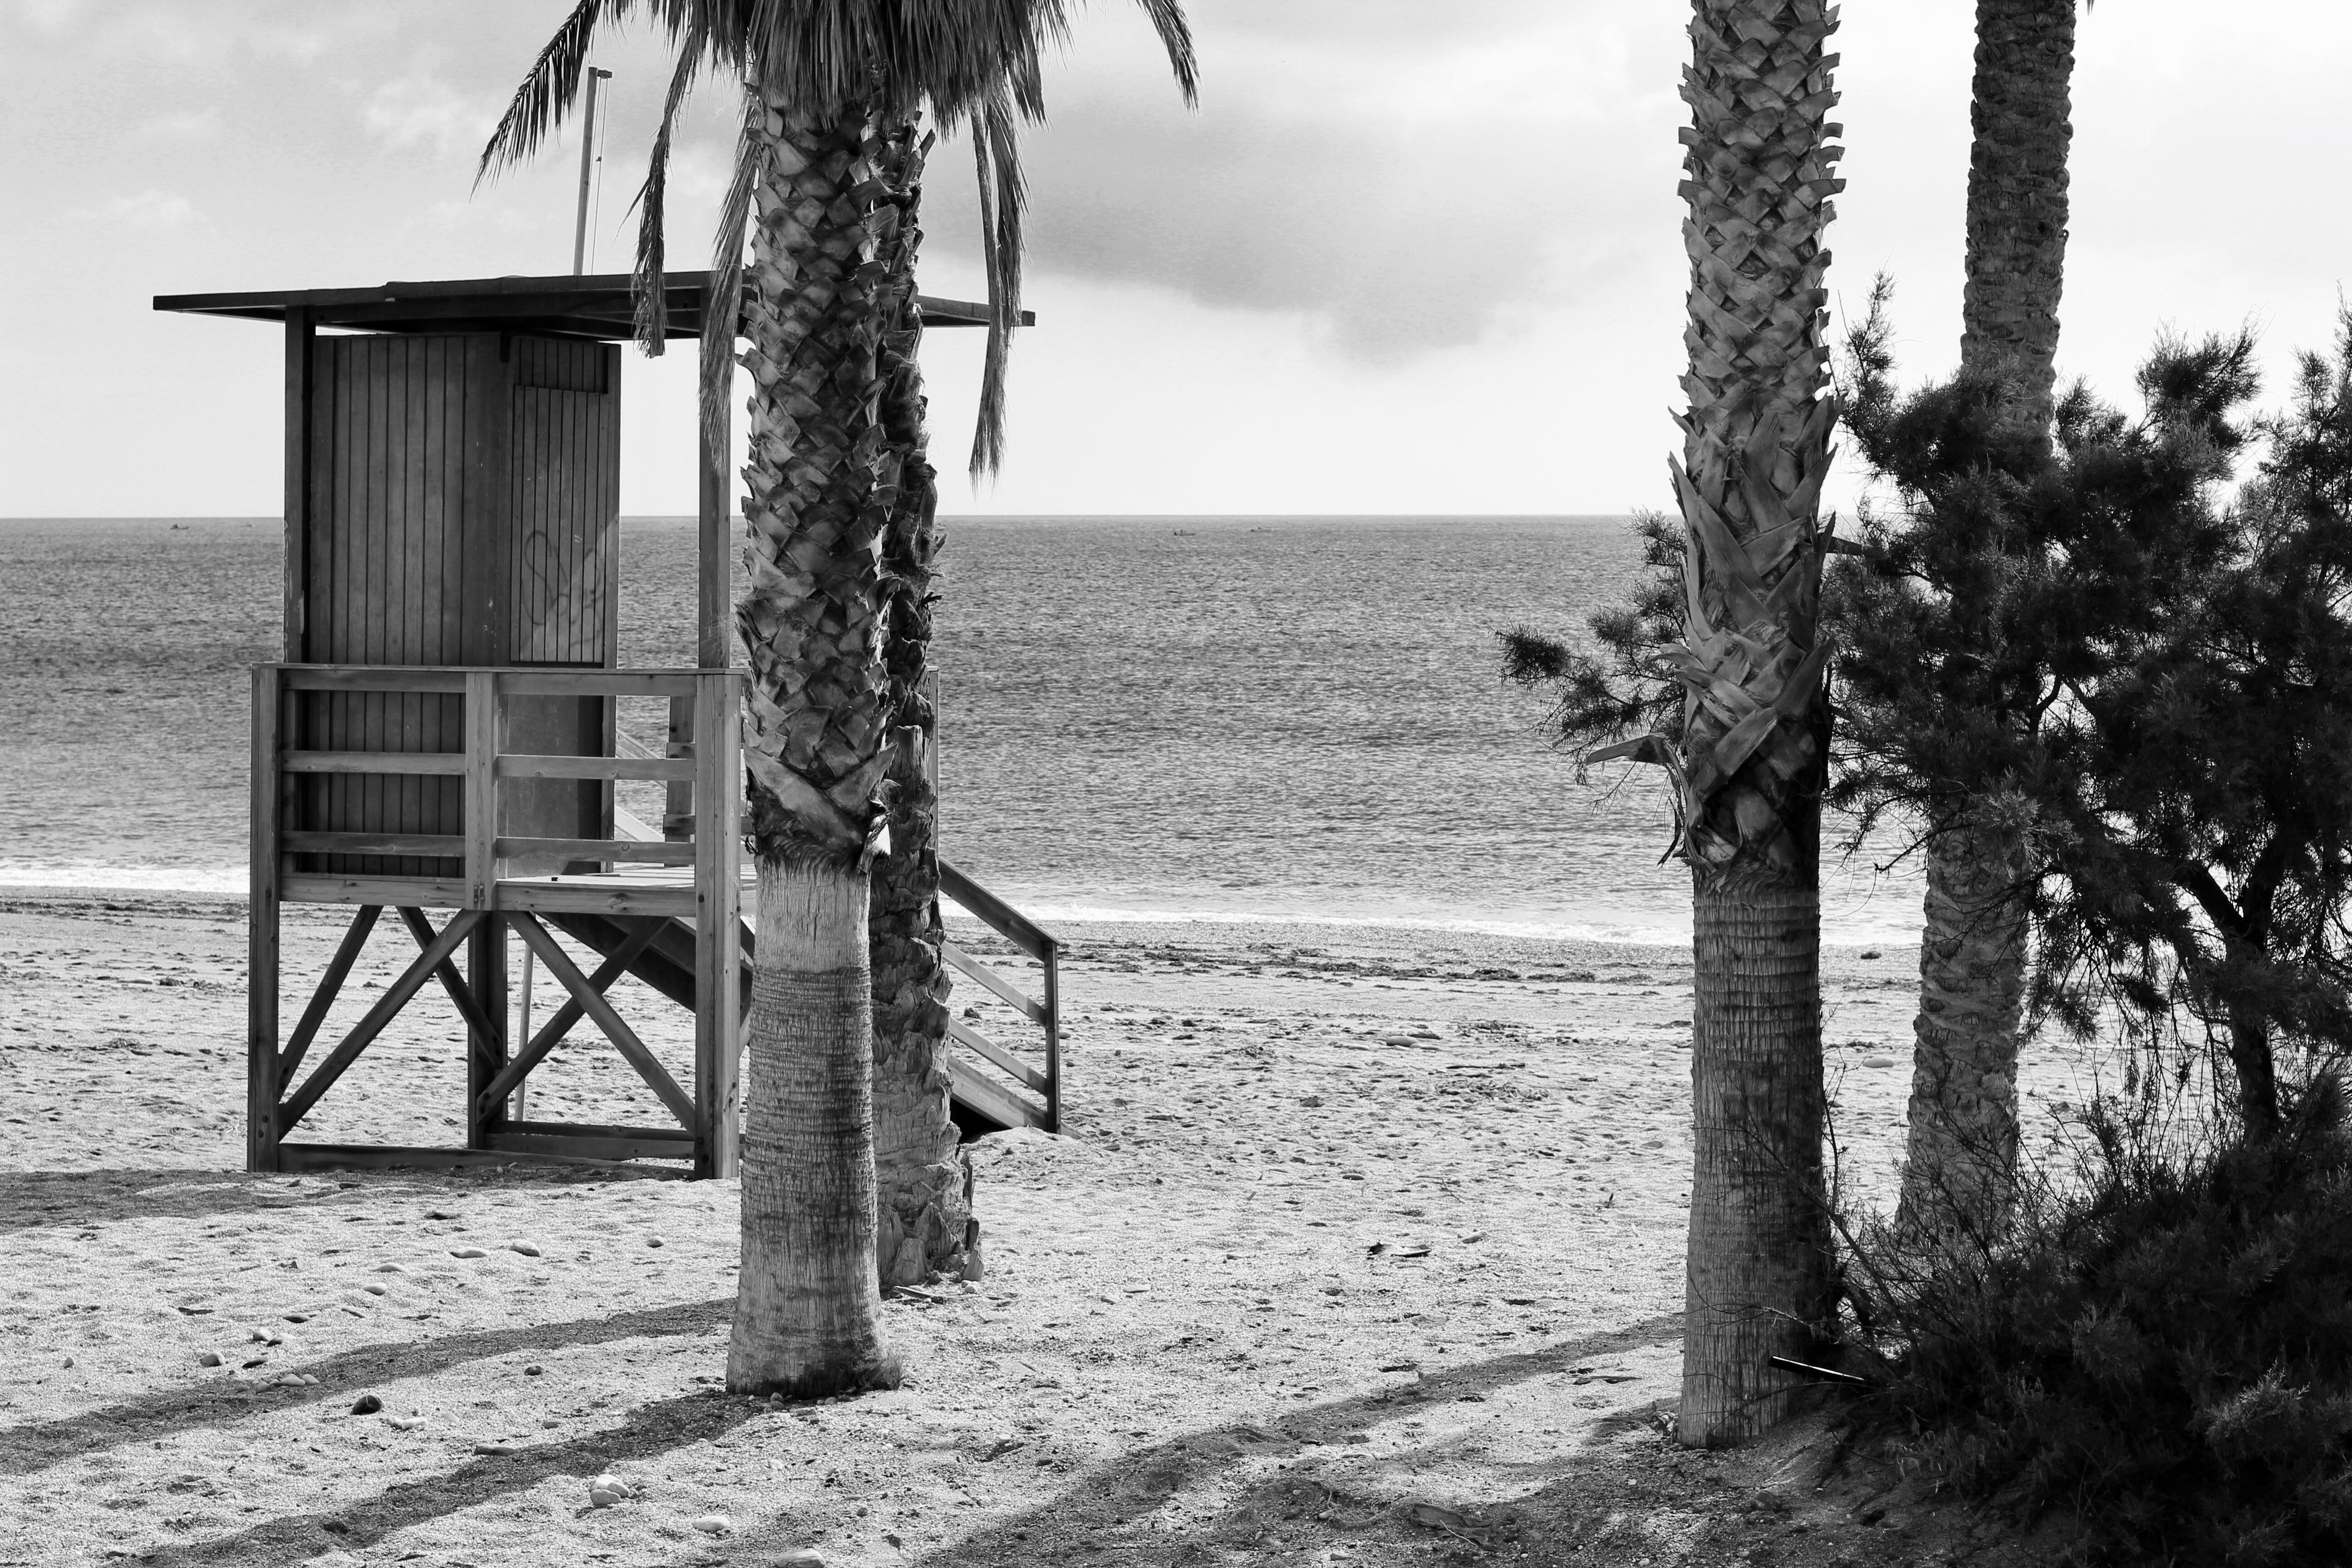 Free stock photo of beach, black and white, lifeguard tower, palm trees